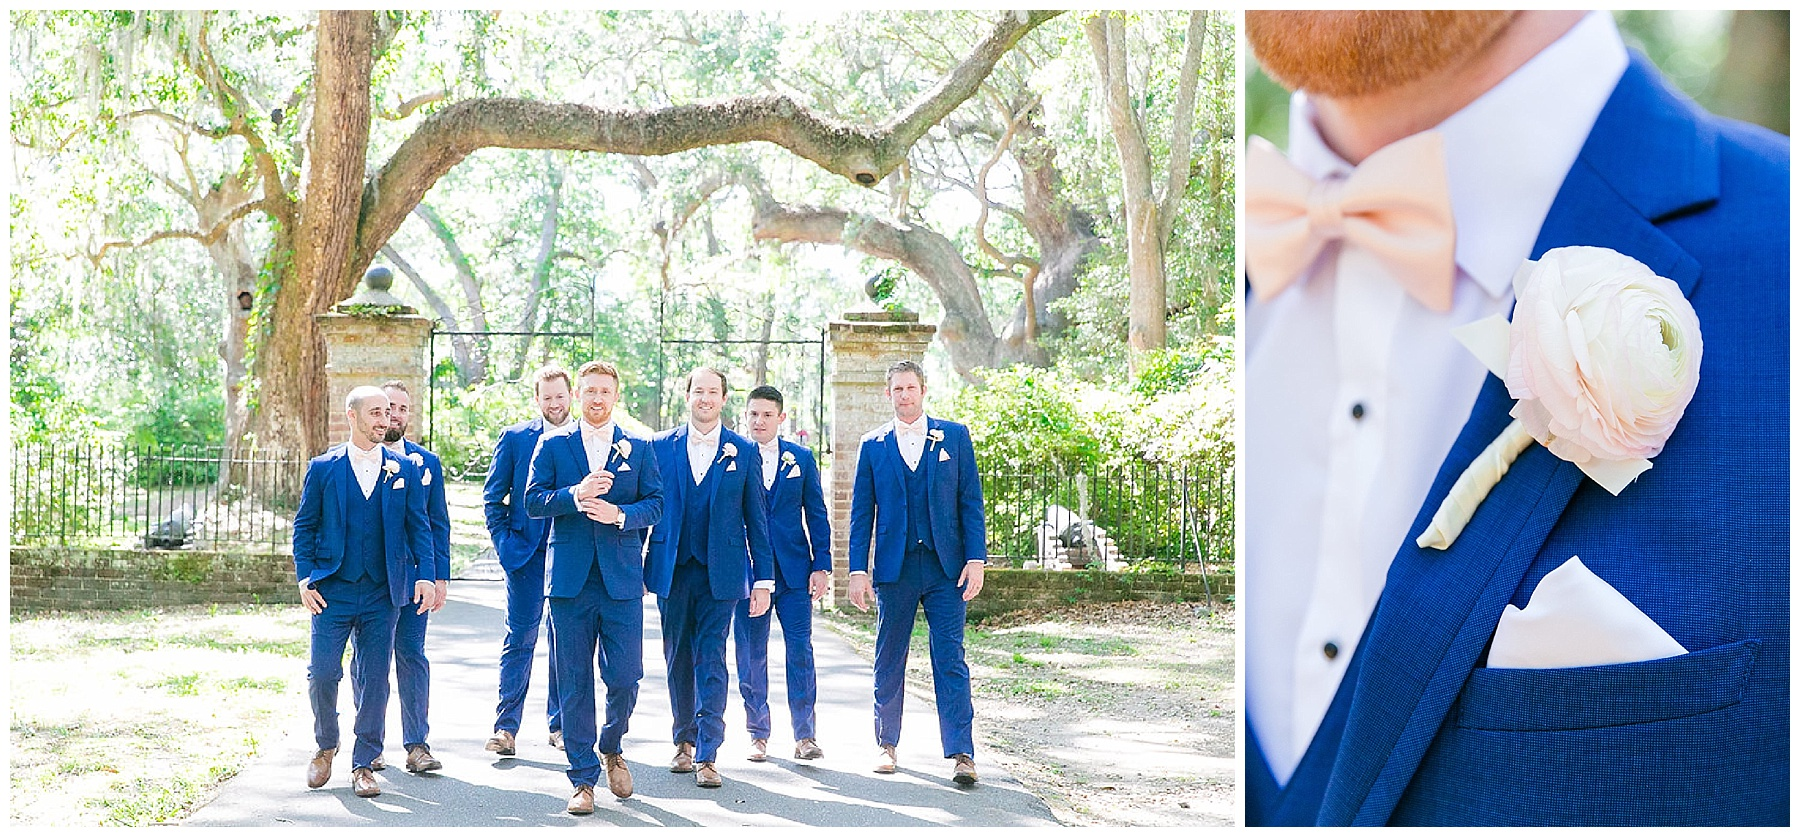 Charleston SC wedding photographer,Charleston SC wedding photography,Charleston wedding photographer,Charleston wedding photography,Dana Cubbage,Dana Cubbage Wedding Photography,Dana Cubbage Weddings,engagement photographer,engagement photography,modern lifestyle wedding photography,wedding photography,